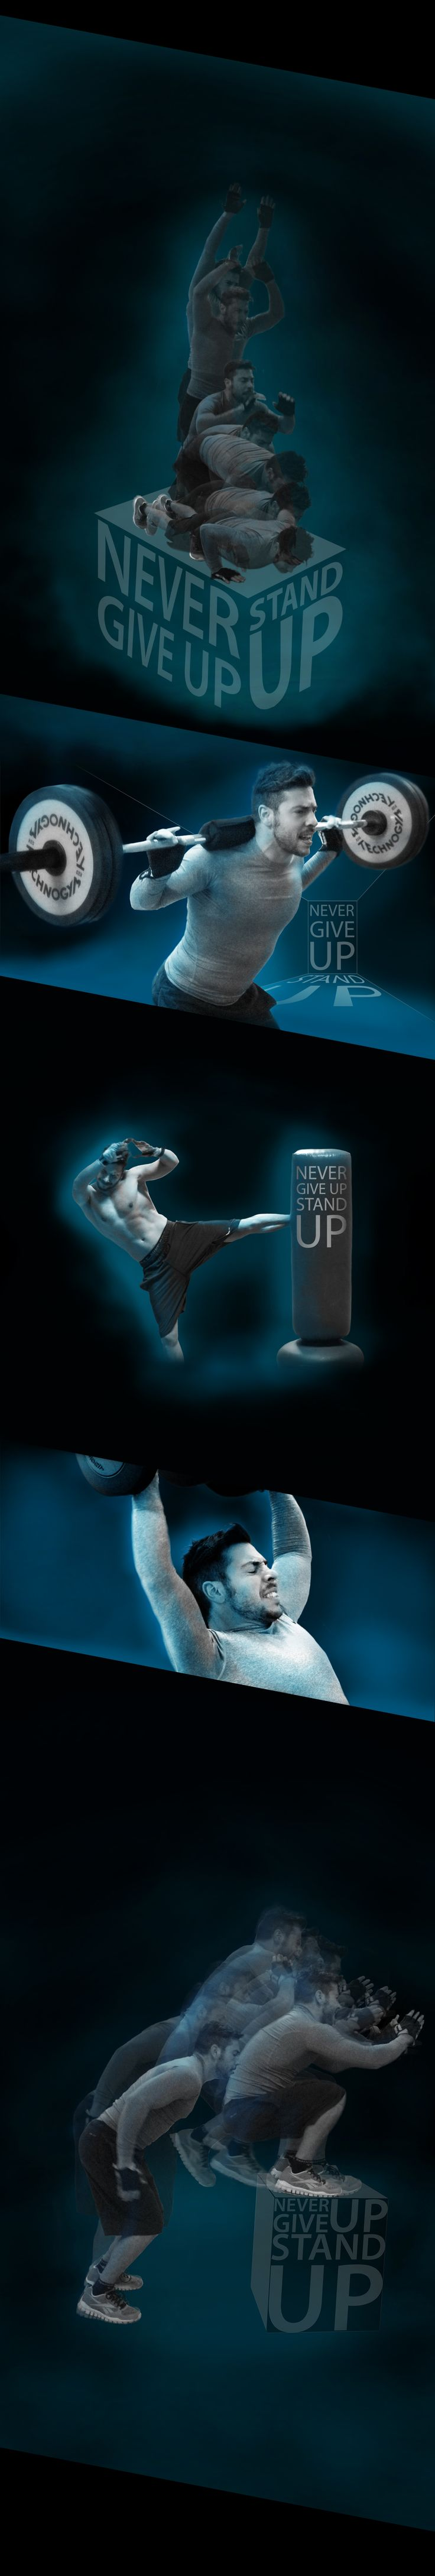 Never Give Up - Stand Up on Behance